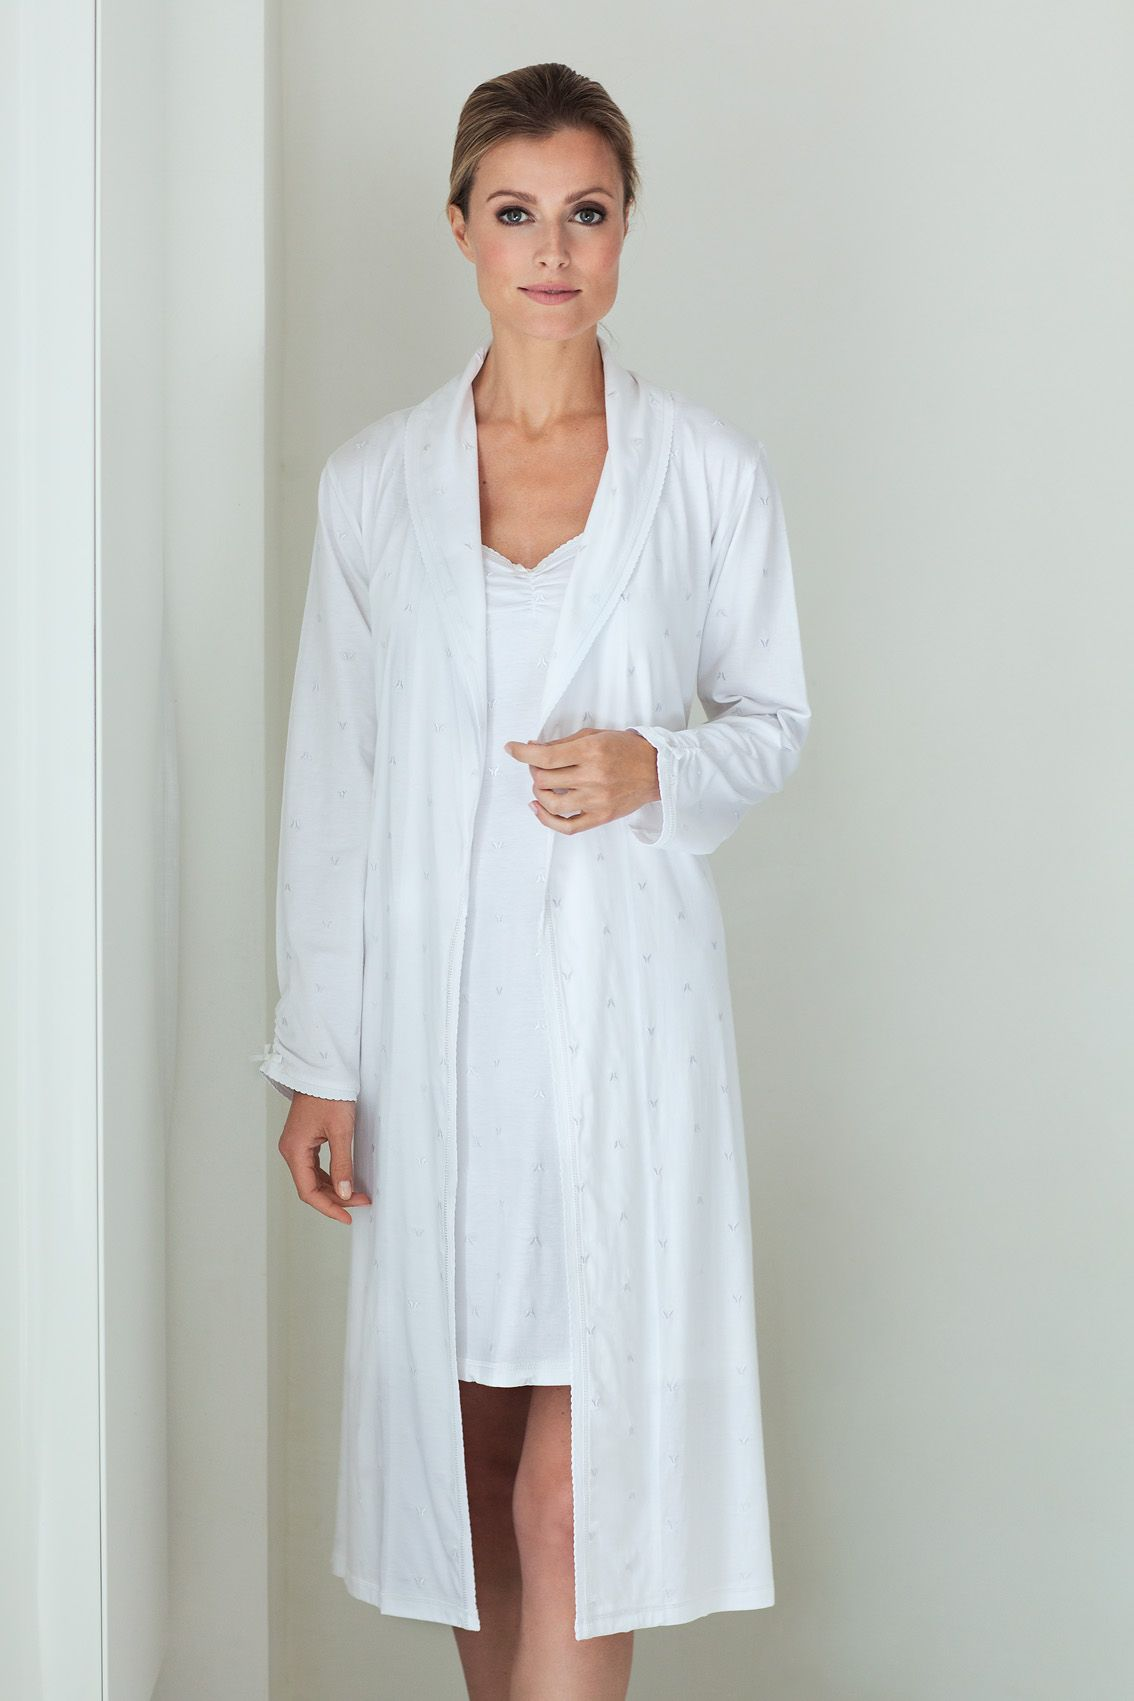 Pastuntte Deluxe ladies white cotton morninggown with little embroidered butterflies perfectly matched with this spaghetti dress with adjustable straps